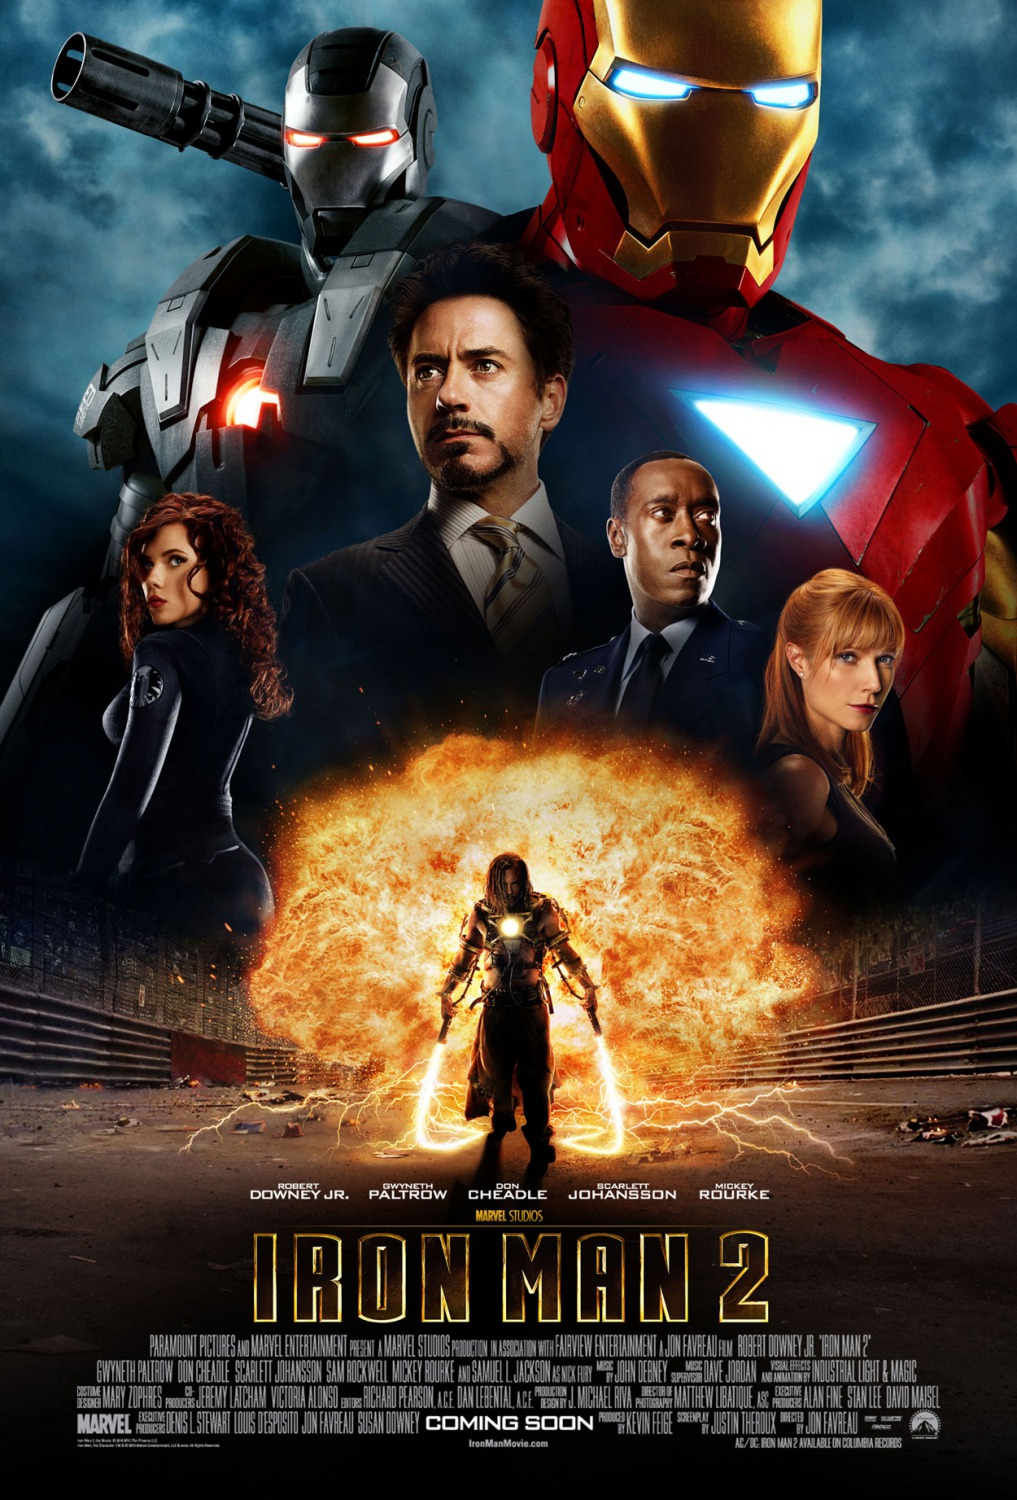 Iron Man 2 movie poster in teal and orange coloration